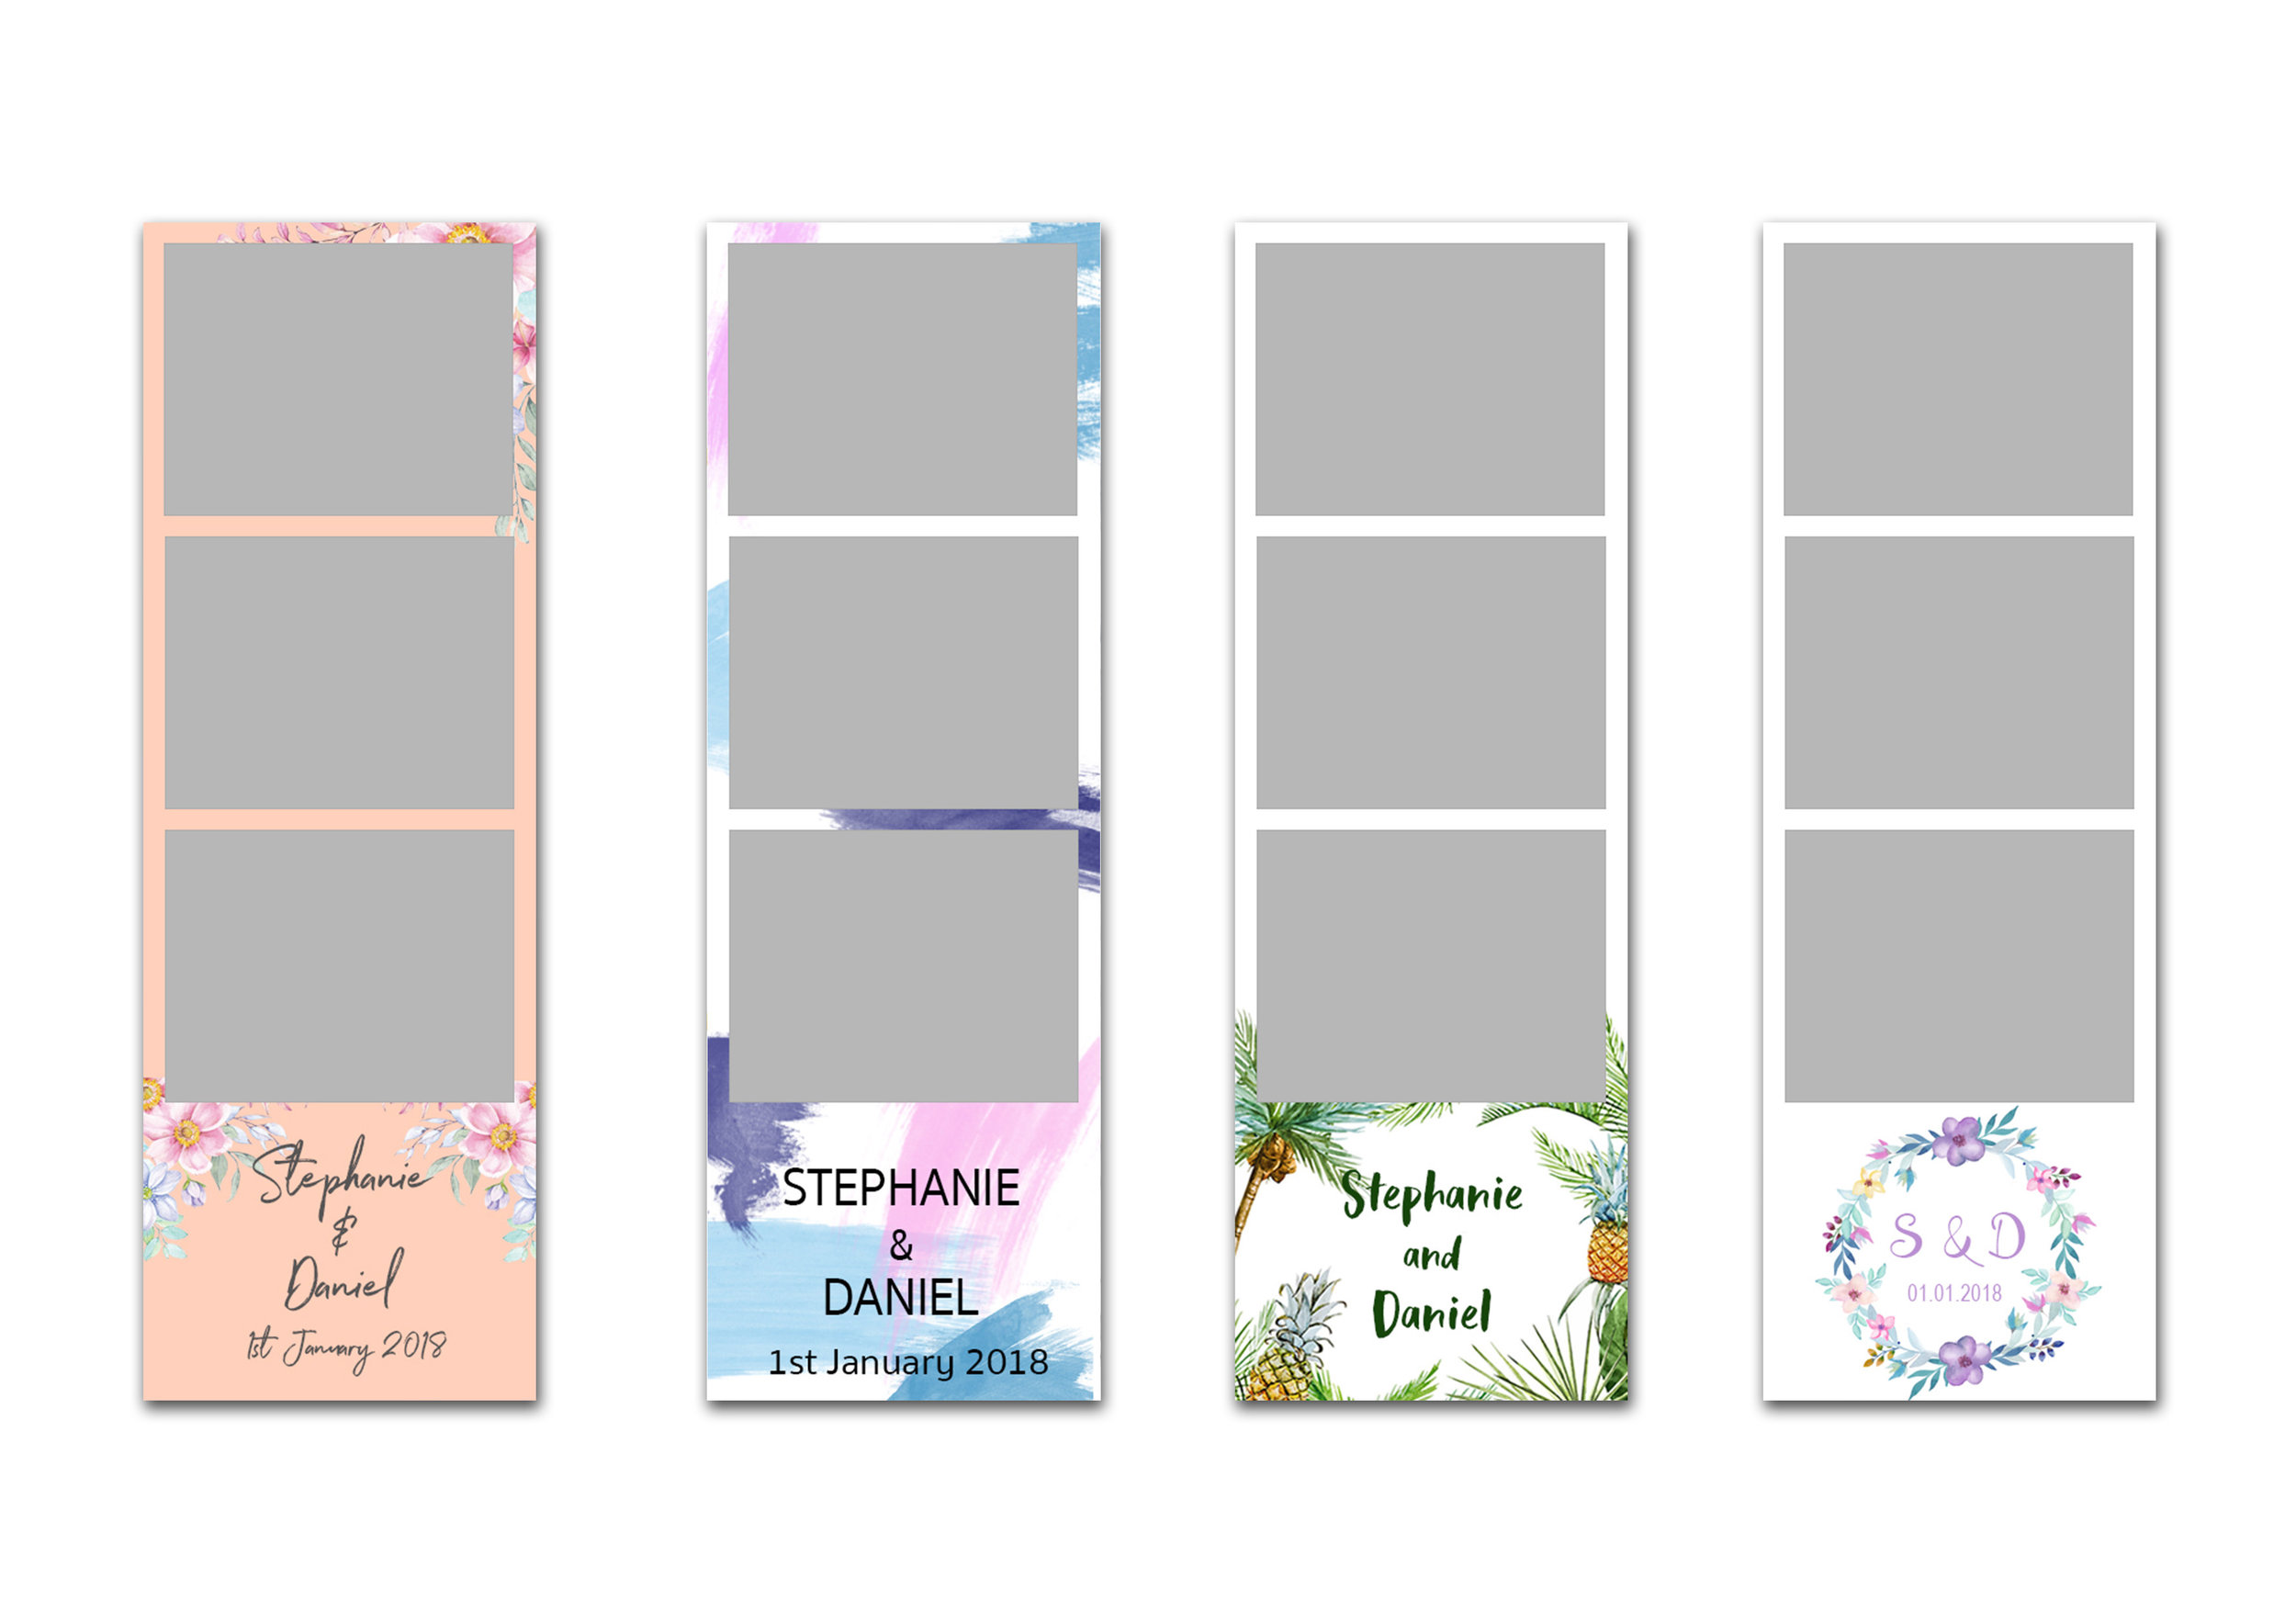 Photo Strip Design - Choose from a range of layouts and styles. Add your logo, personal message or custom create a print design that will perfectly complement your wedding style or party theme.